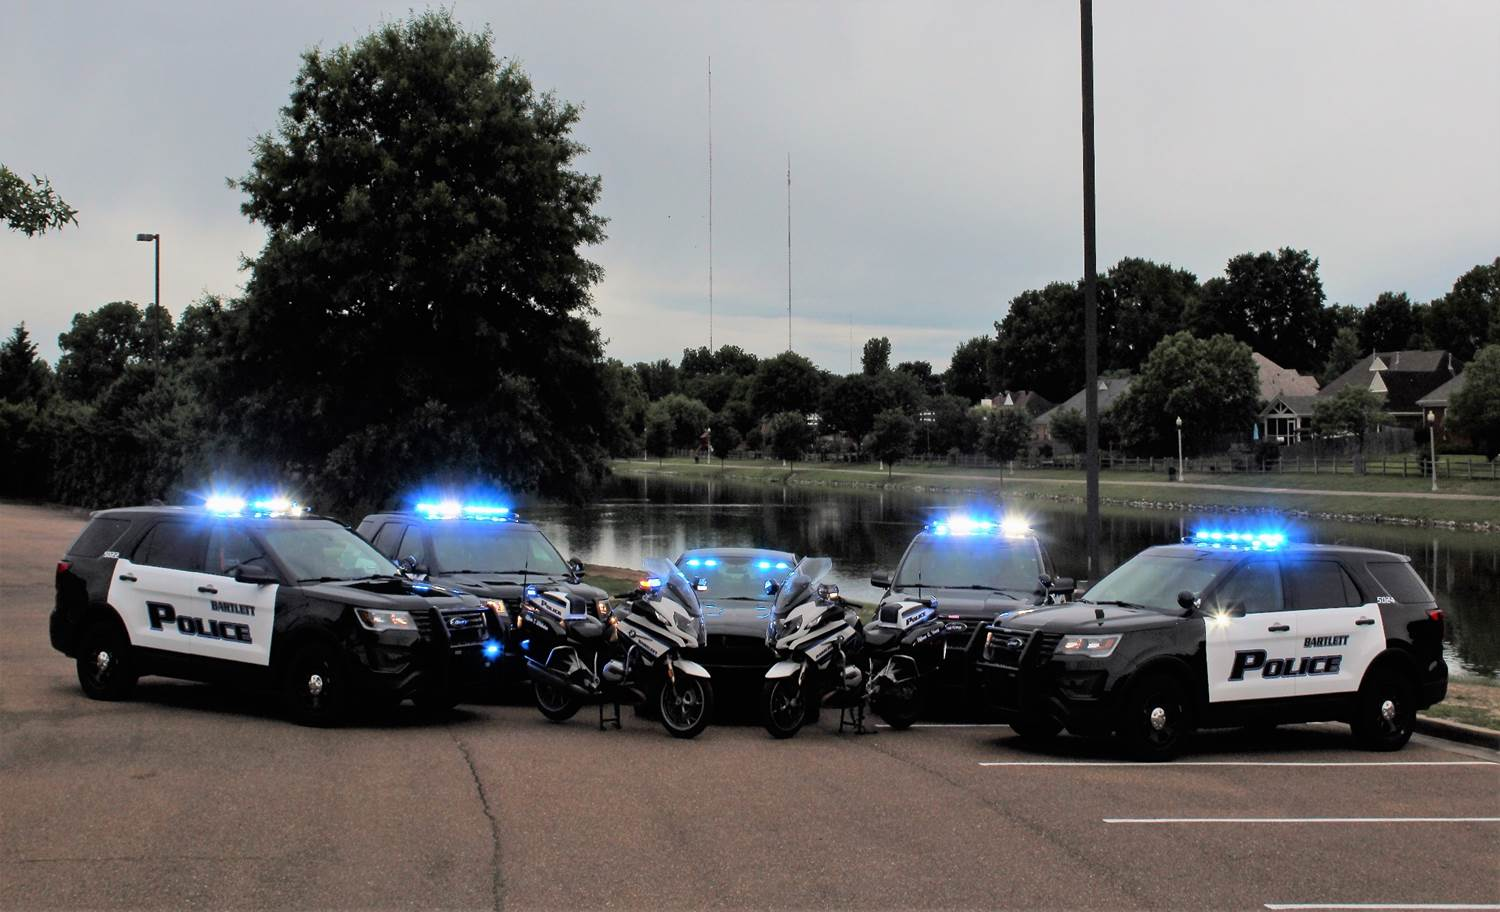 Patrol Vehicles and motorcycles parked together